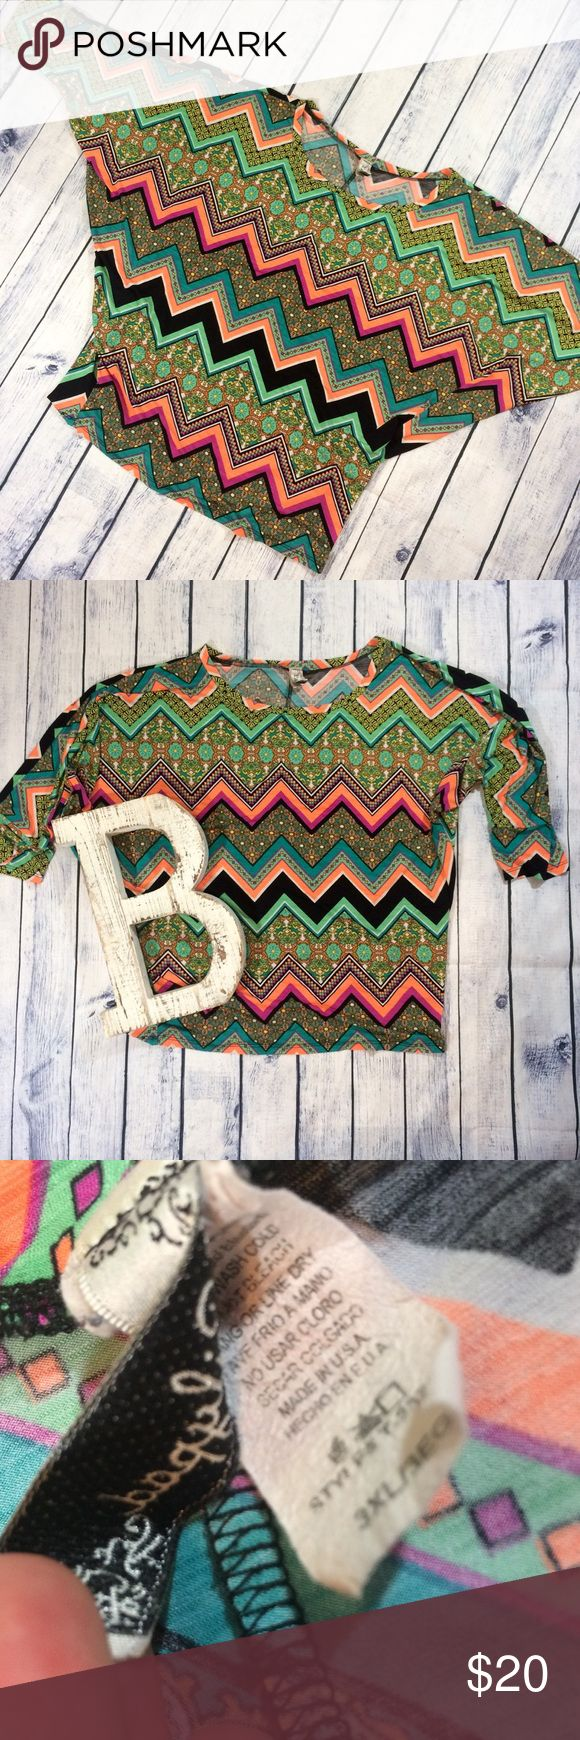 Plus size chevron fun dolman style top size 3x Great used condition! Pretty and fun colors in a details chevron print! Dolman style sleeves. Scoopneck. Band at hem. Size 3x. Make me an offer! 20% off all bundles! boutique Tops